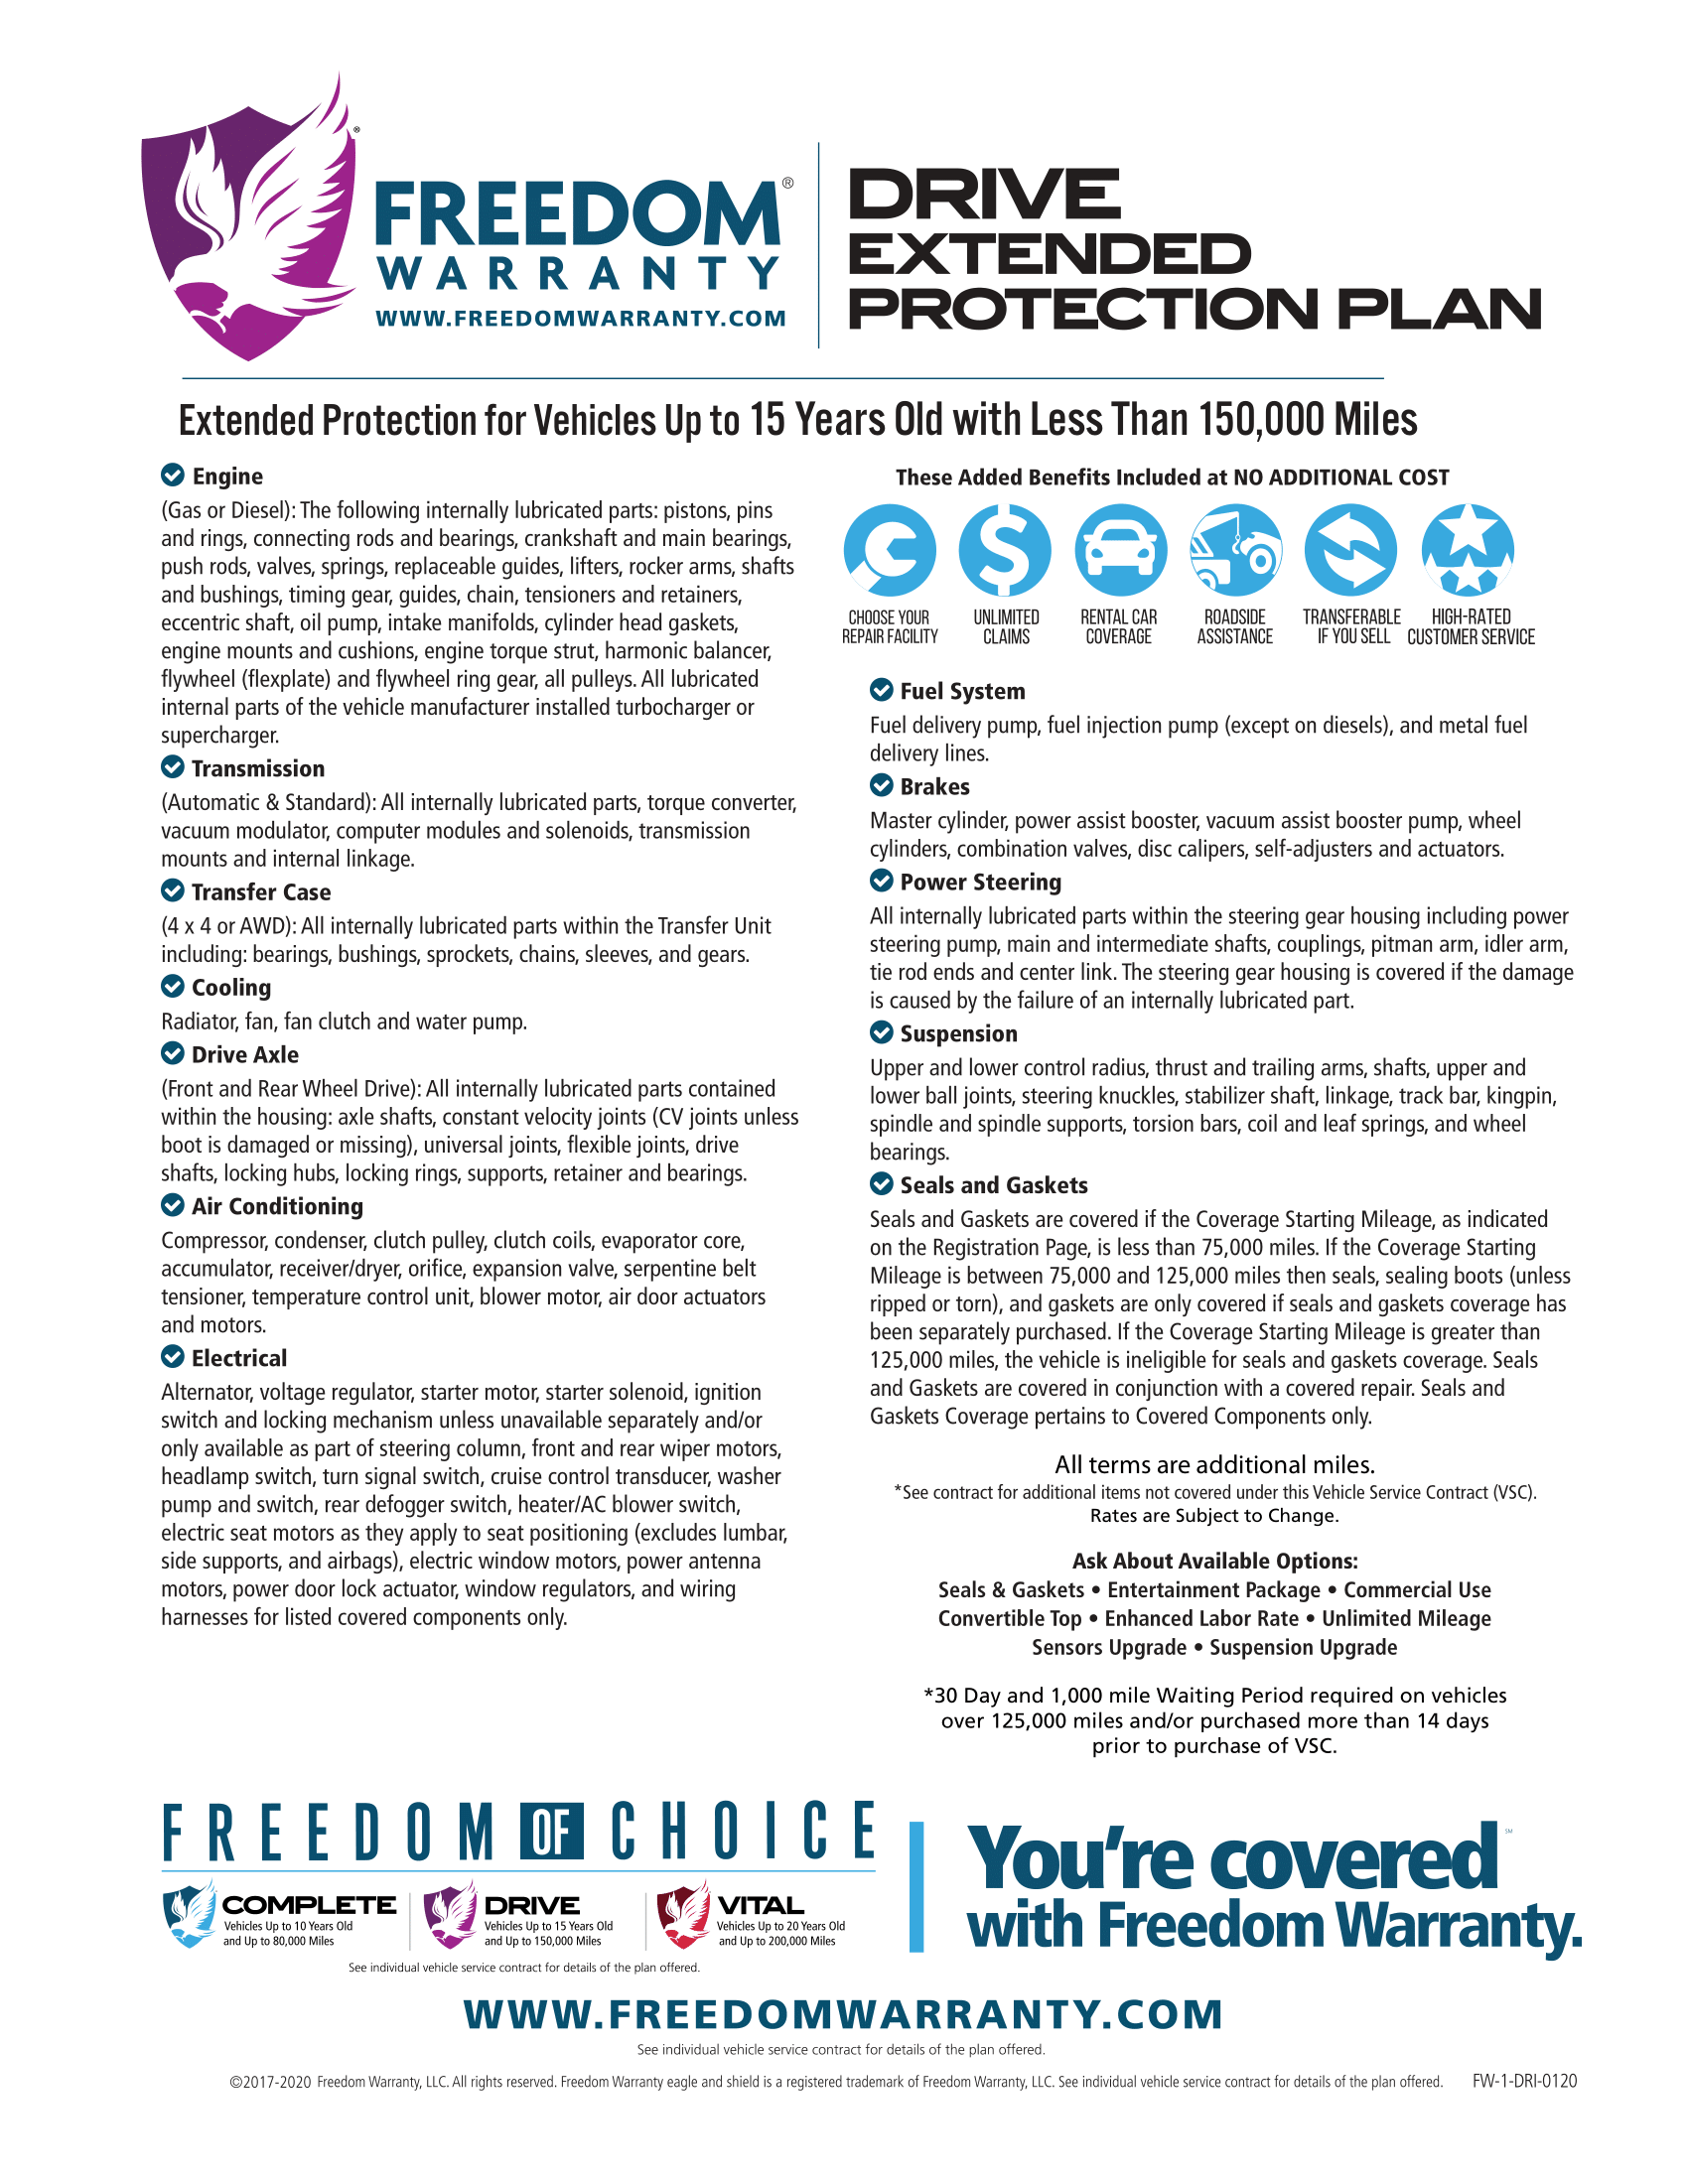 Freedom Warranty Drive Service Contract